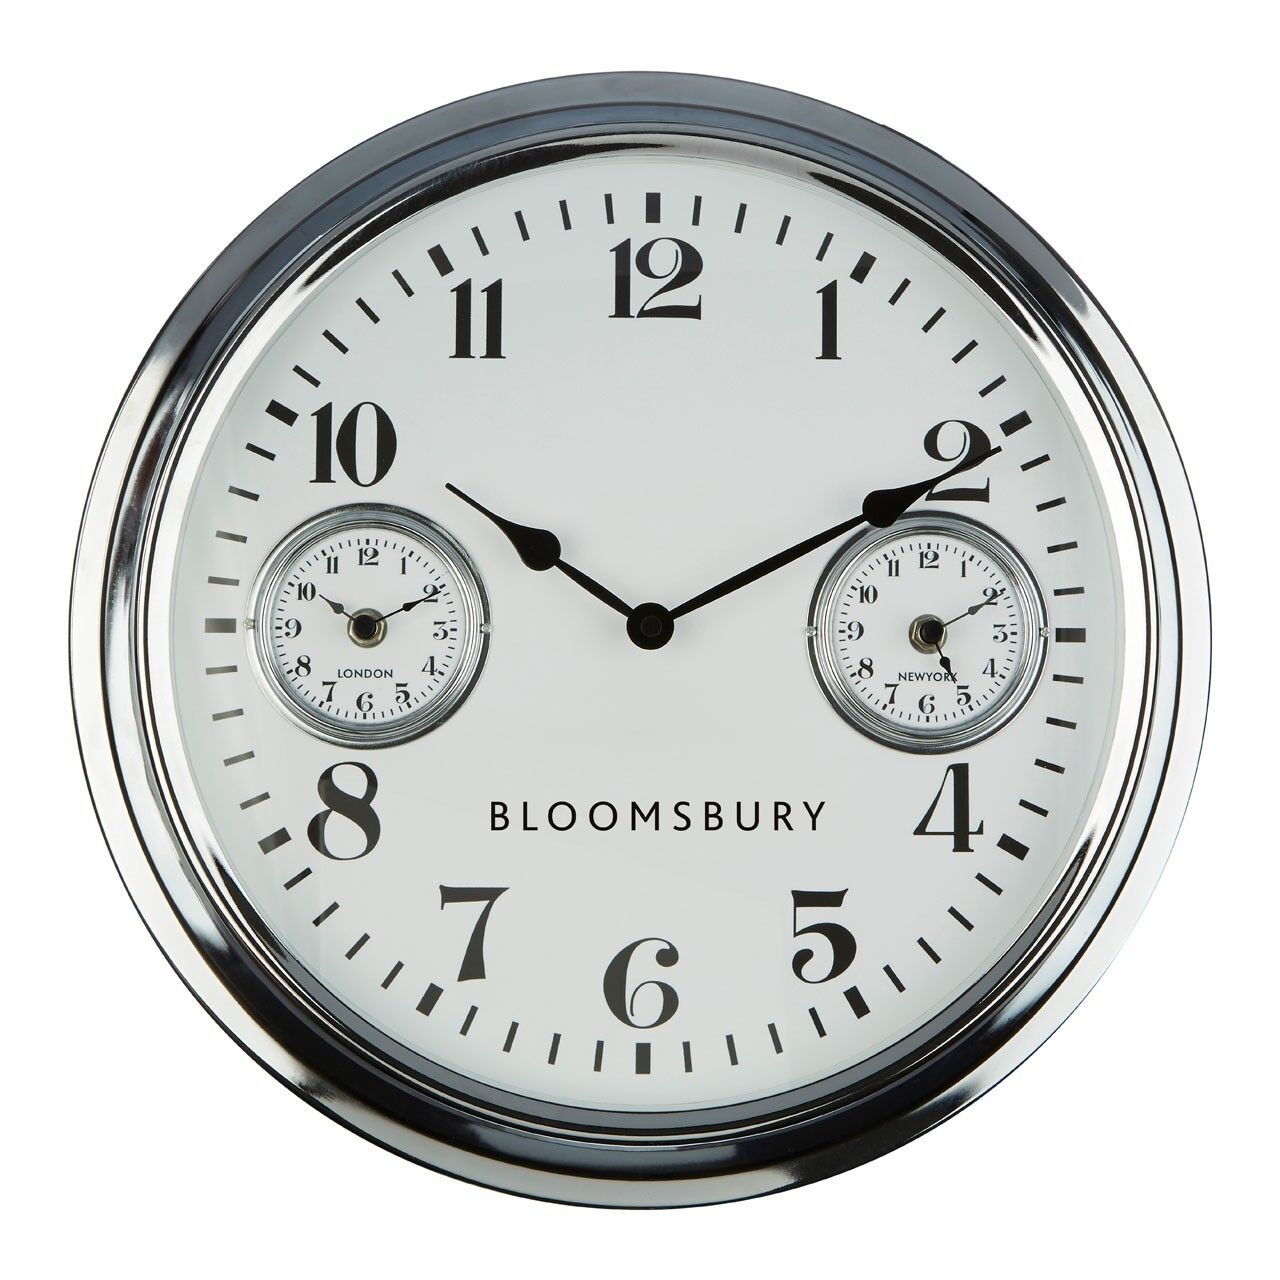 Wall Clock Chrome Finish 2 Smaller Clocks Within The Large Clock